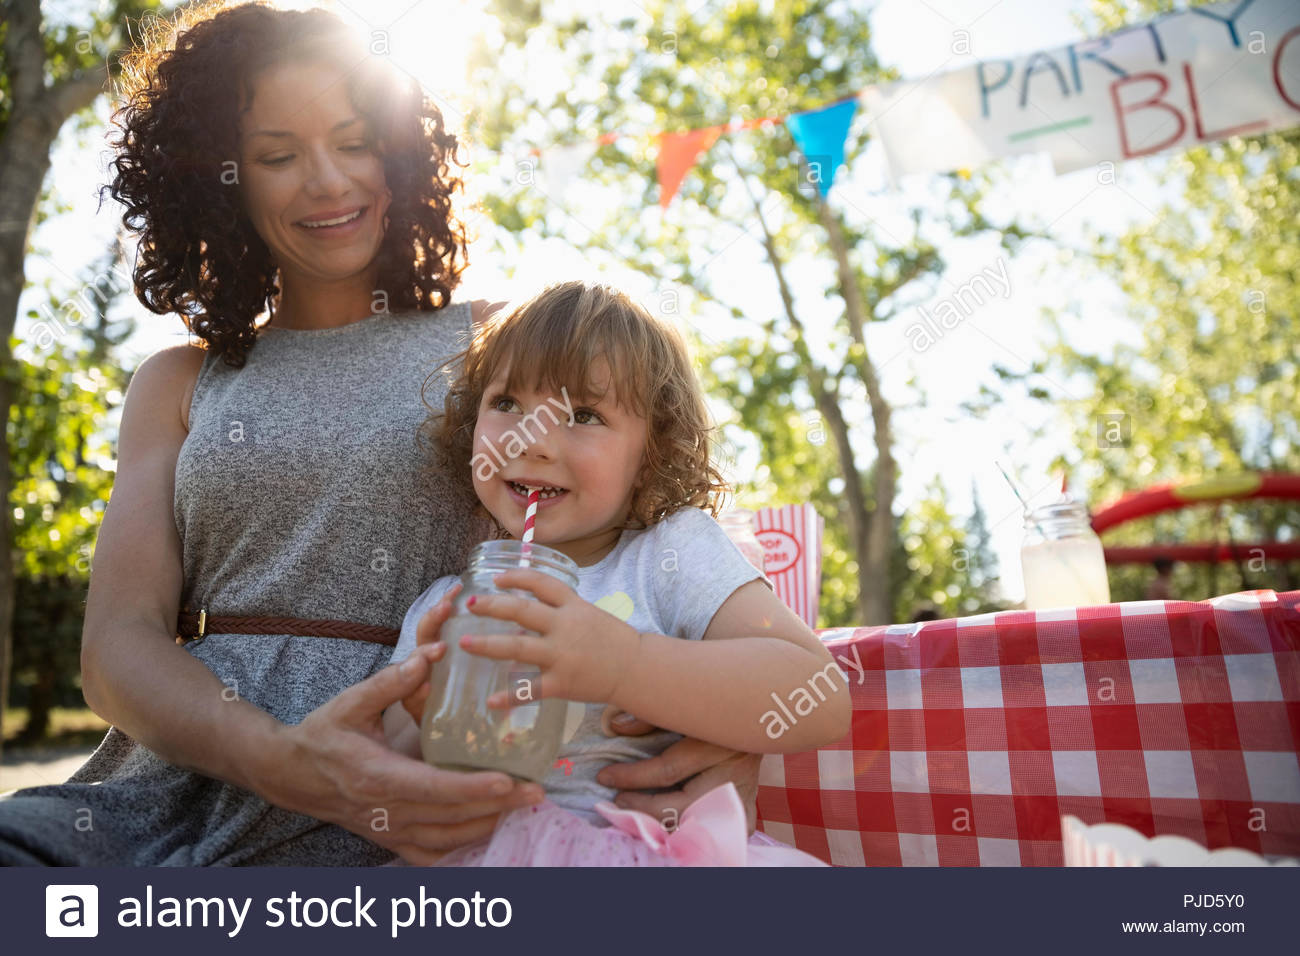 Mother and daughter drinking lemonade at summer neighborhood block party - Stock Image